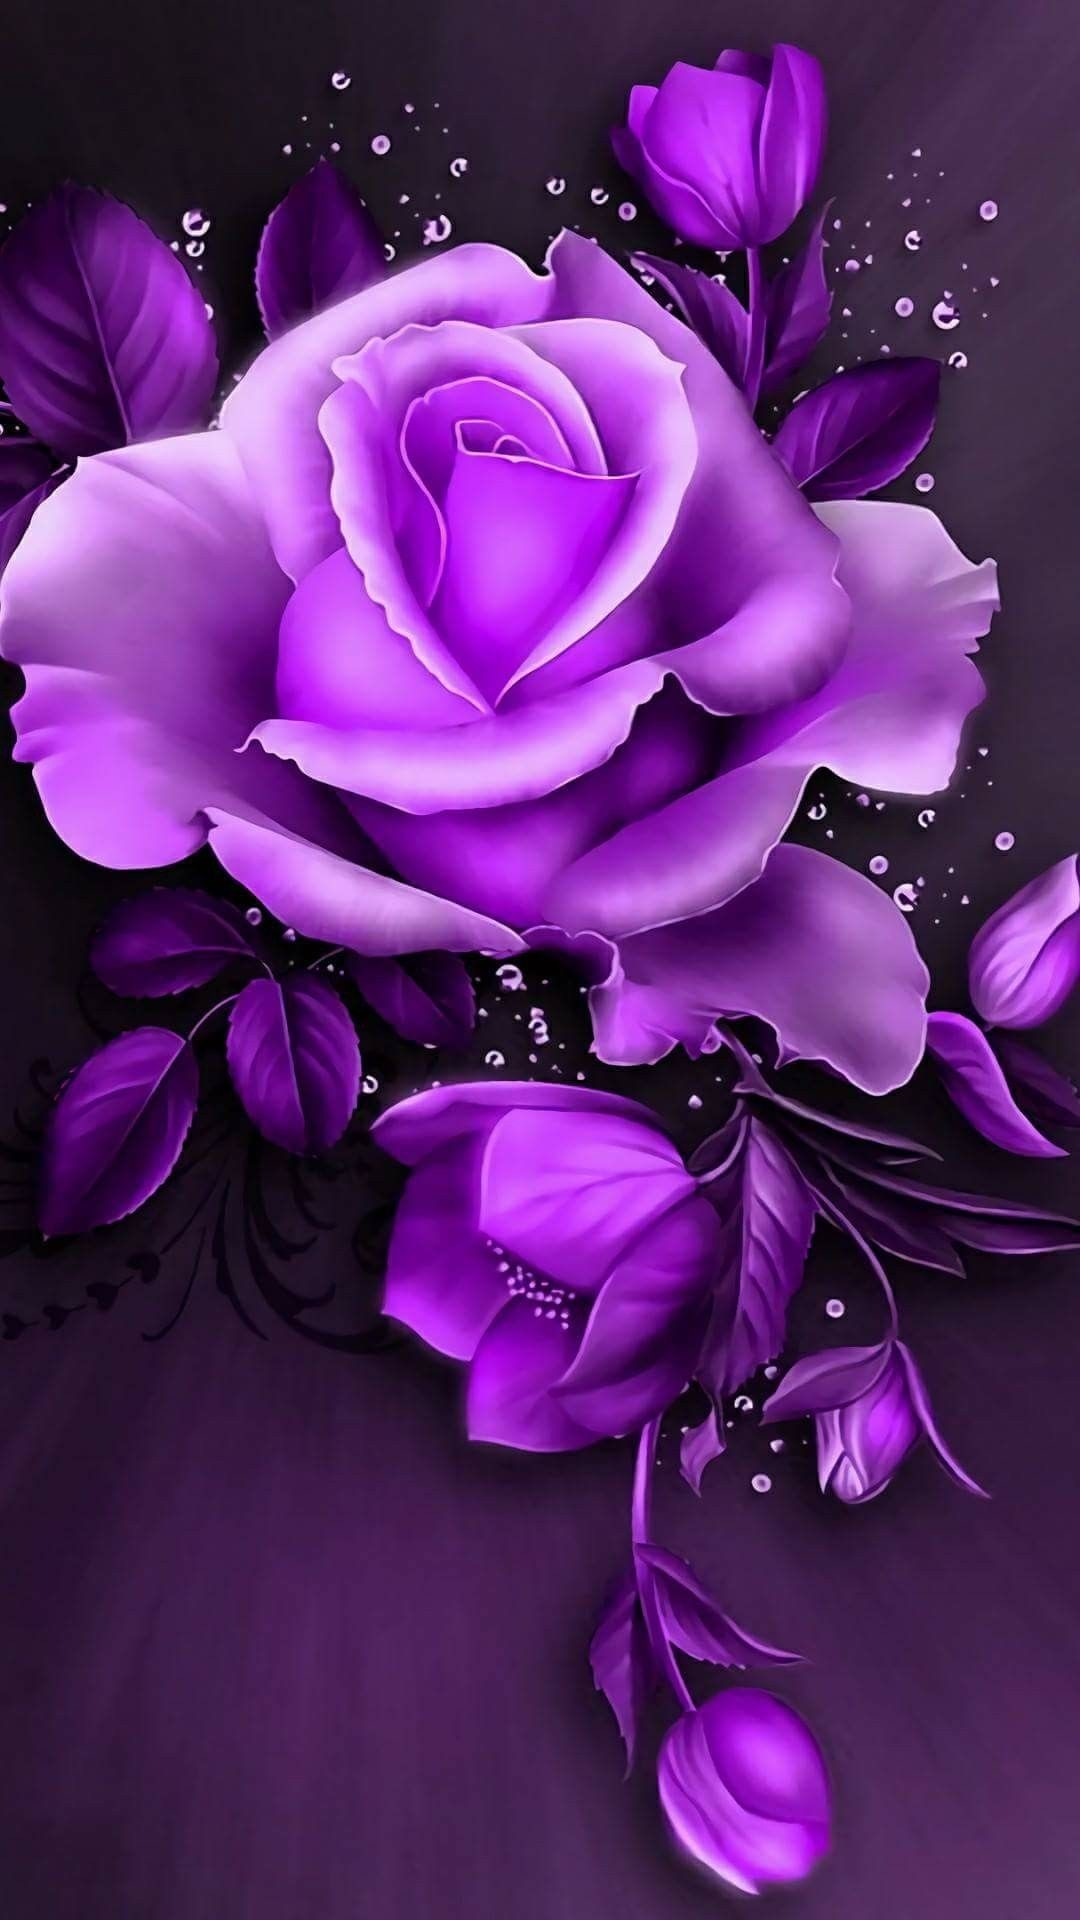 Res: 1080x1920, 1920x1080 Beautiful Pink Rose Wallpapers Images